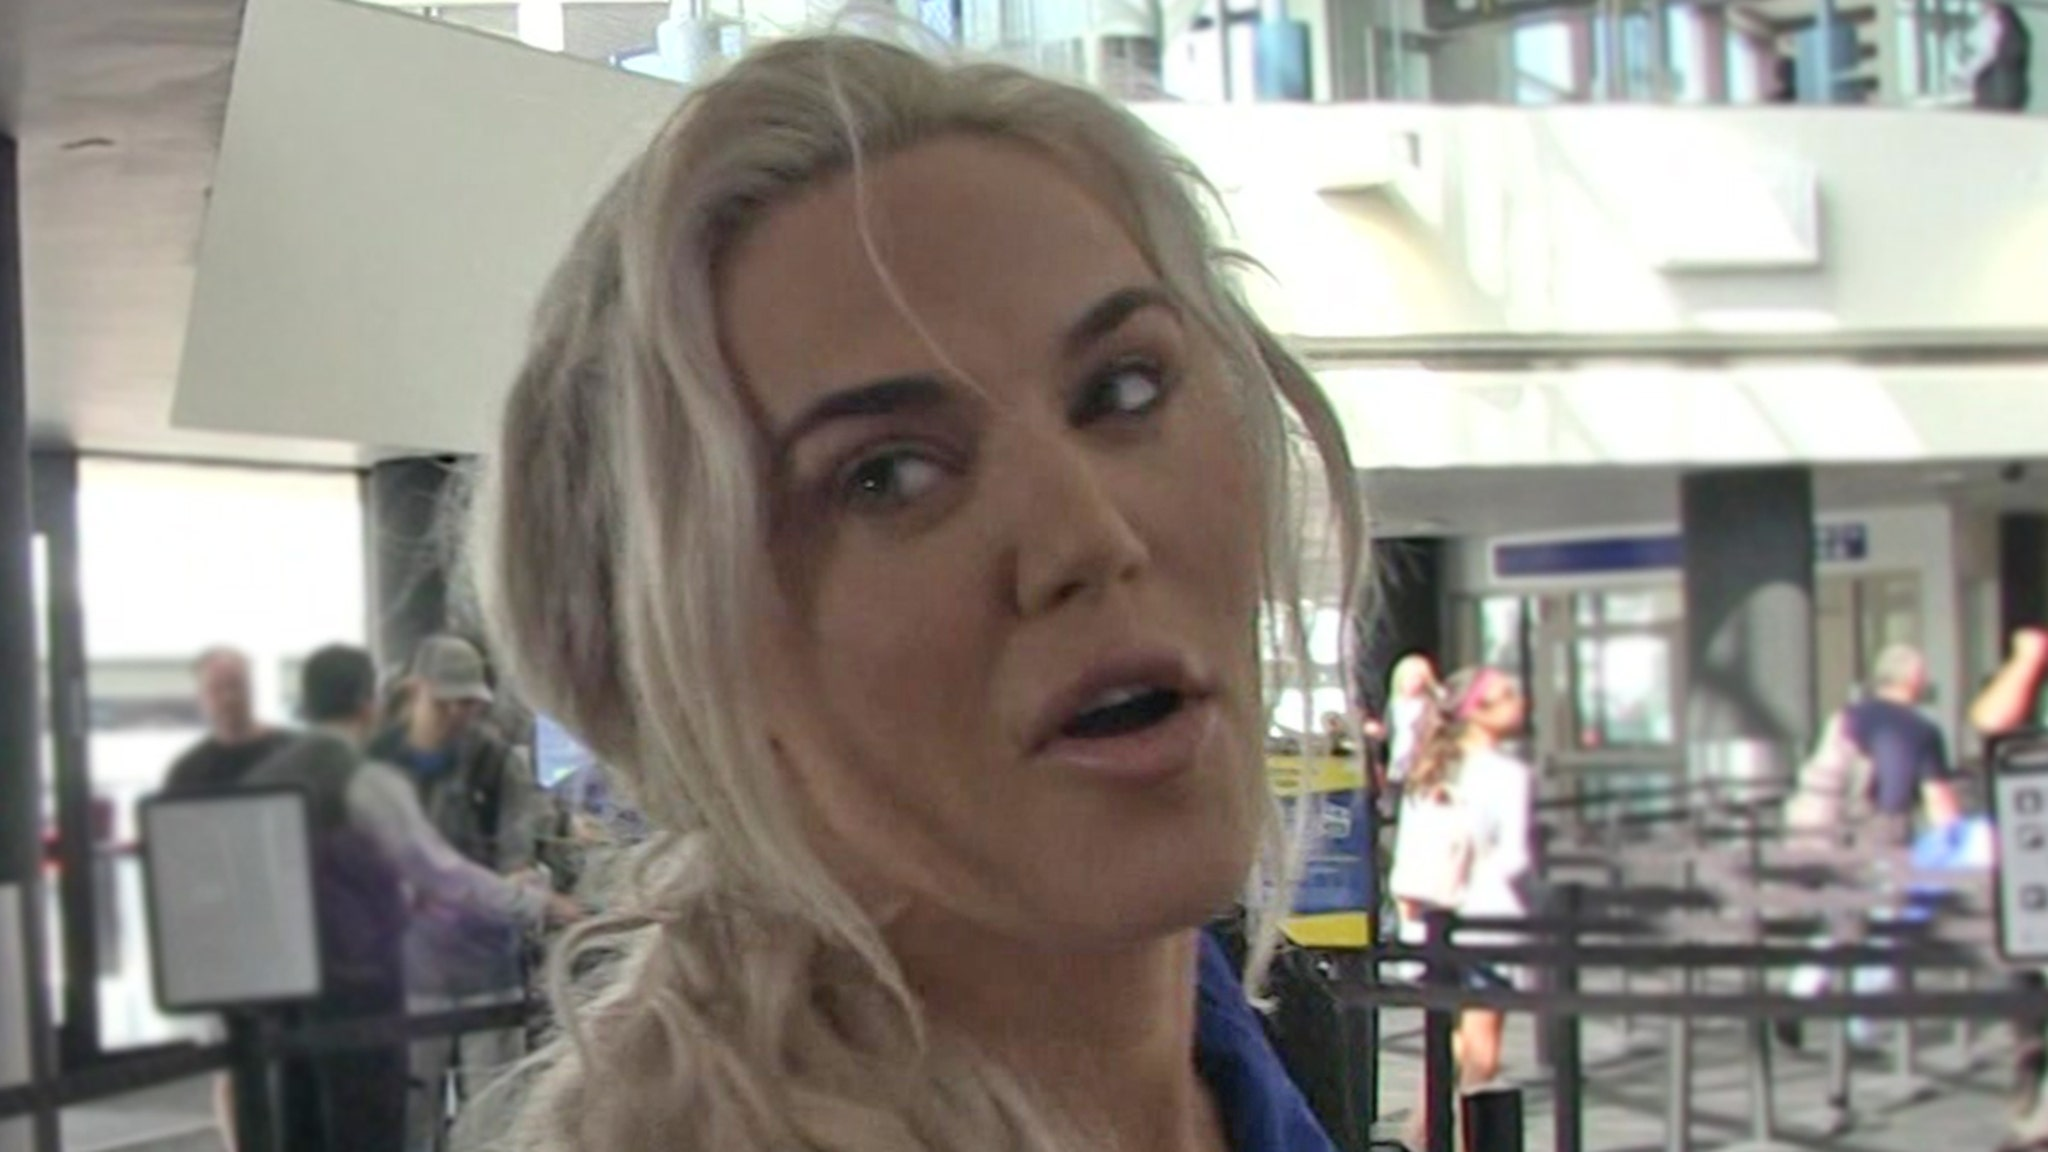 WWE's Lana, Leaked Sex Tape Is NOT Her